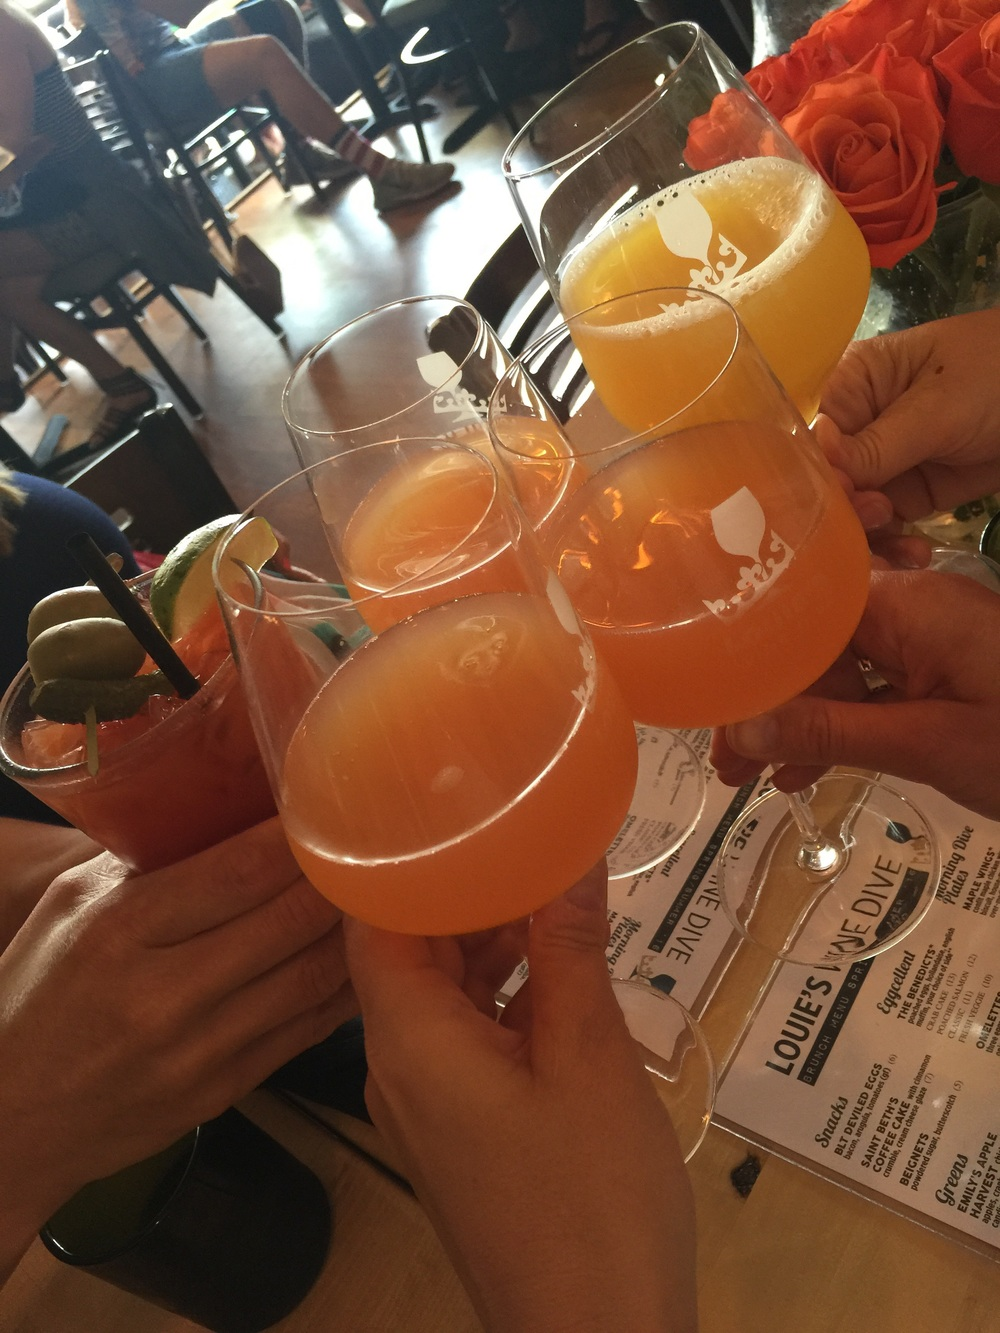 Grapefruit and Orange Juice mimosas